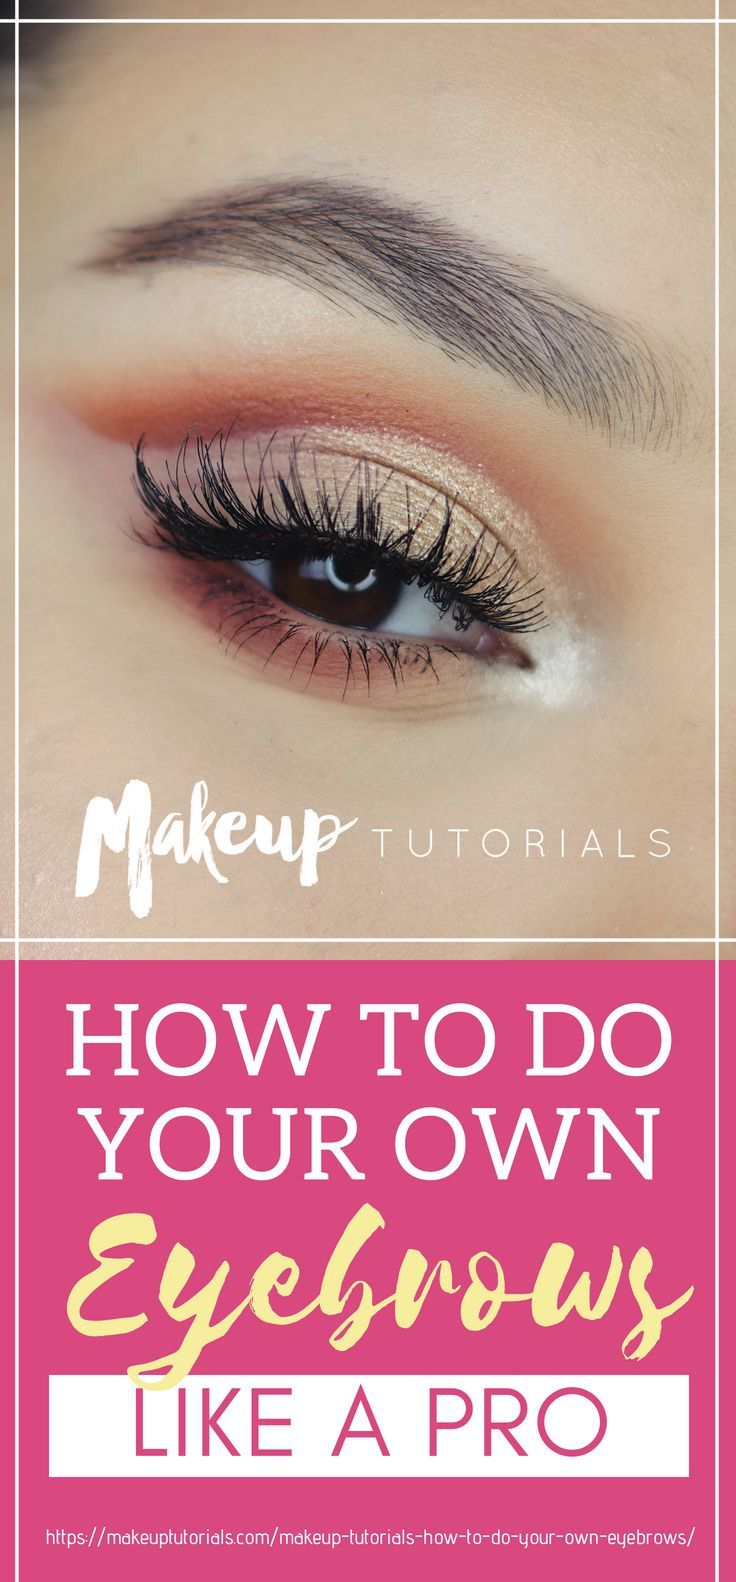 How To Do Your Own Eyebrows Like A Pro! [INFOGRAPHIC